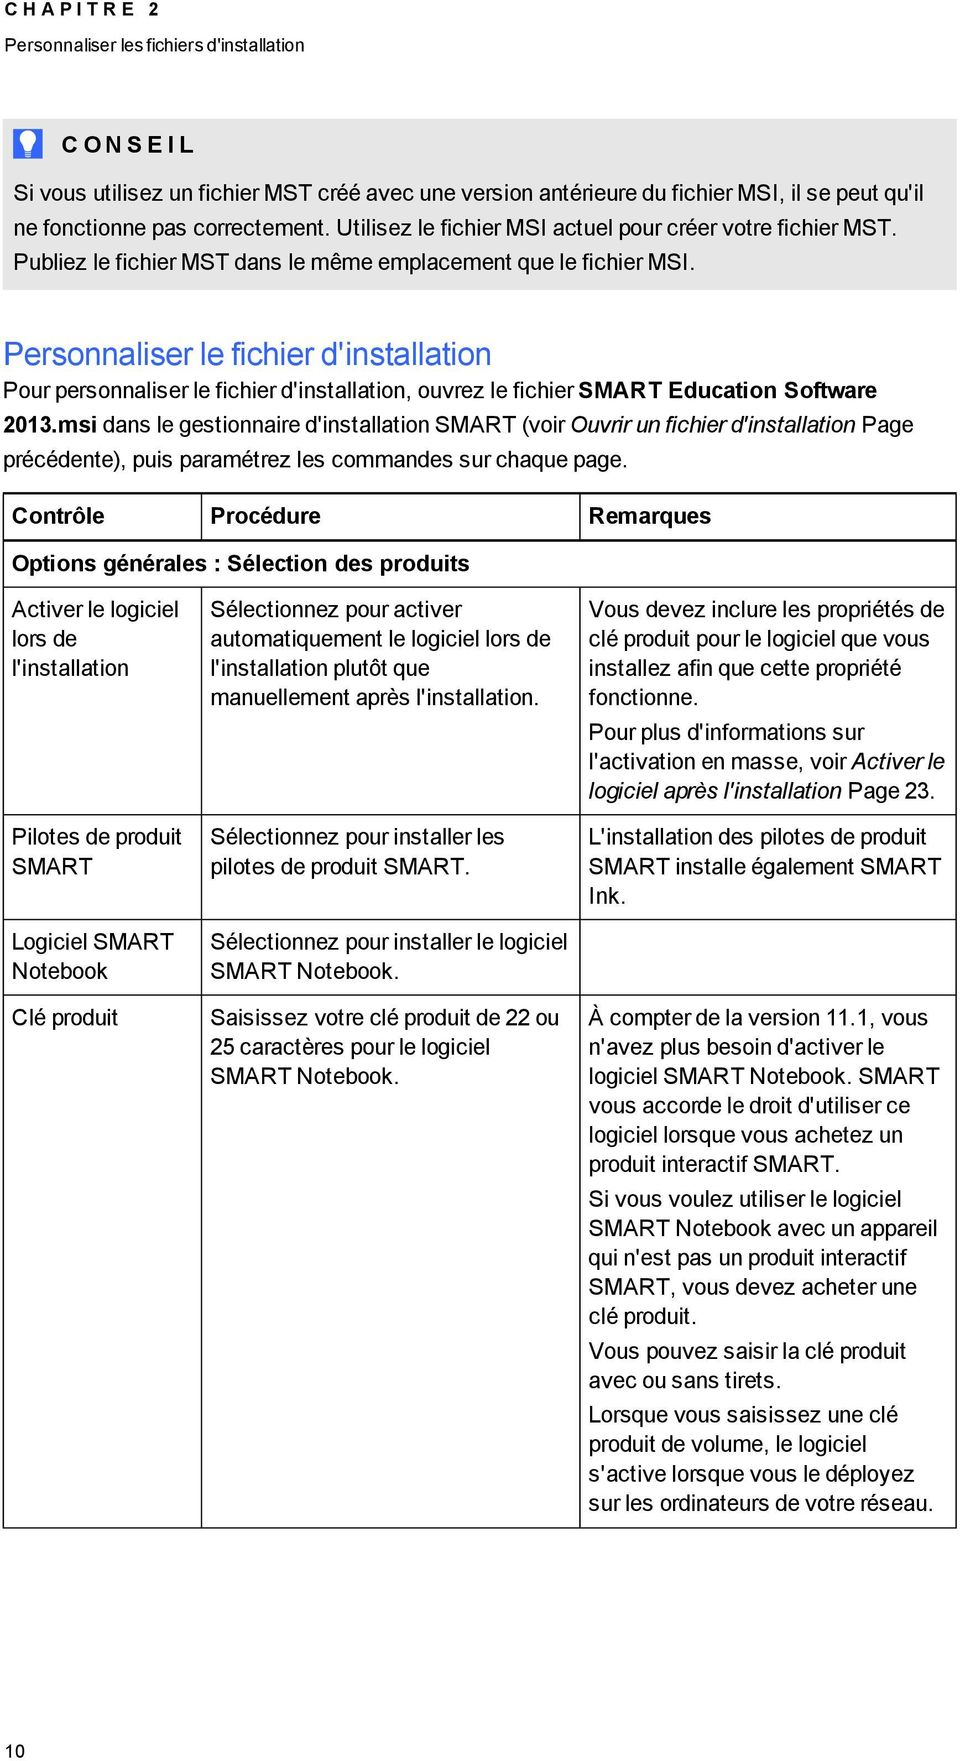 Persnnaliser le fichier d'installatin Pur persnnaliser le fichier d'installatin, uvrez le fichier SMART Educatin Sftware 2013.